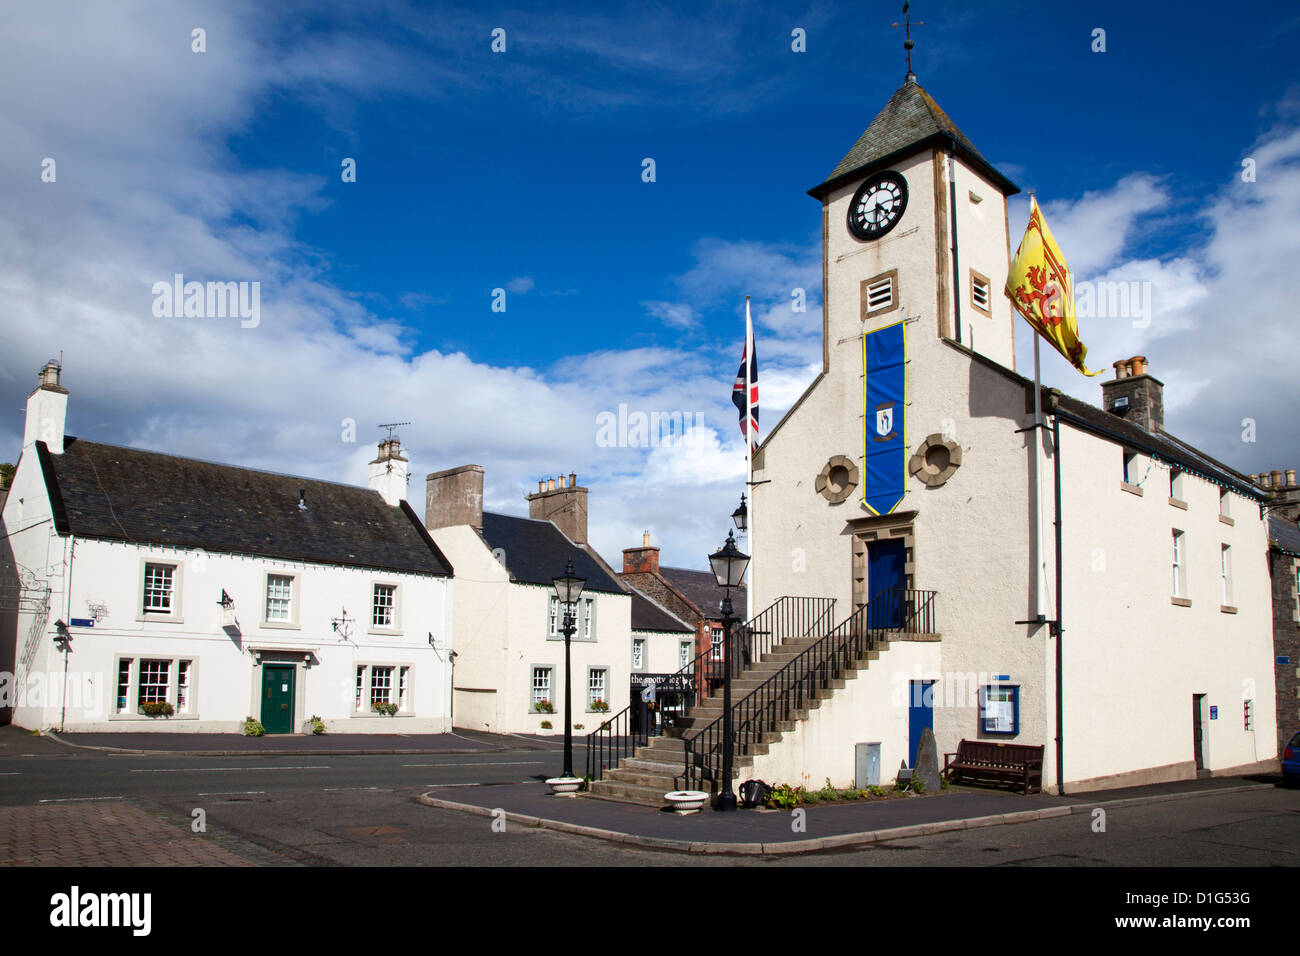 The Town Hall, former Tollbooth, in the Market Place at Lauder, Scottish Borders, Scotland, United Kingdom, Europe - Stock Image